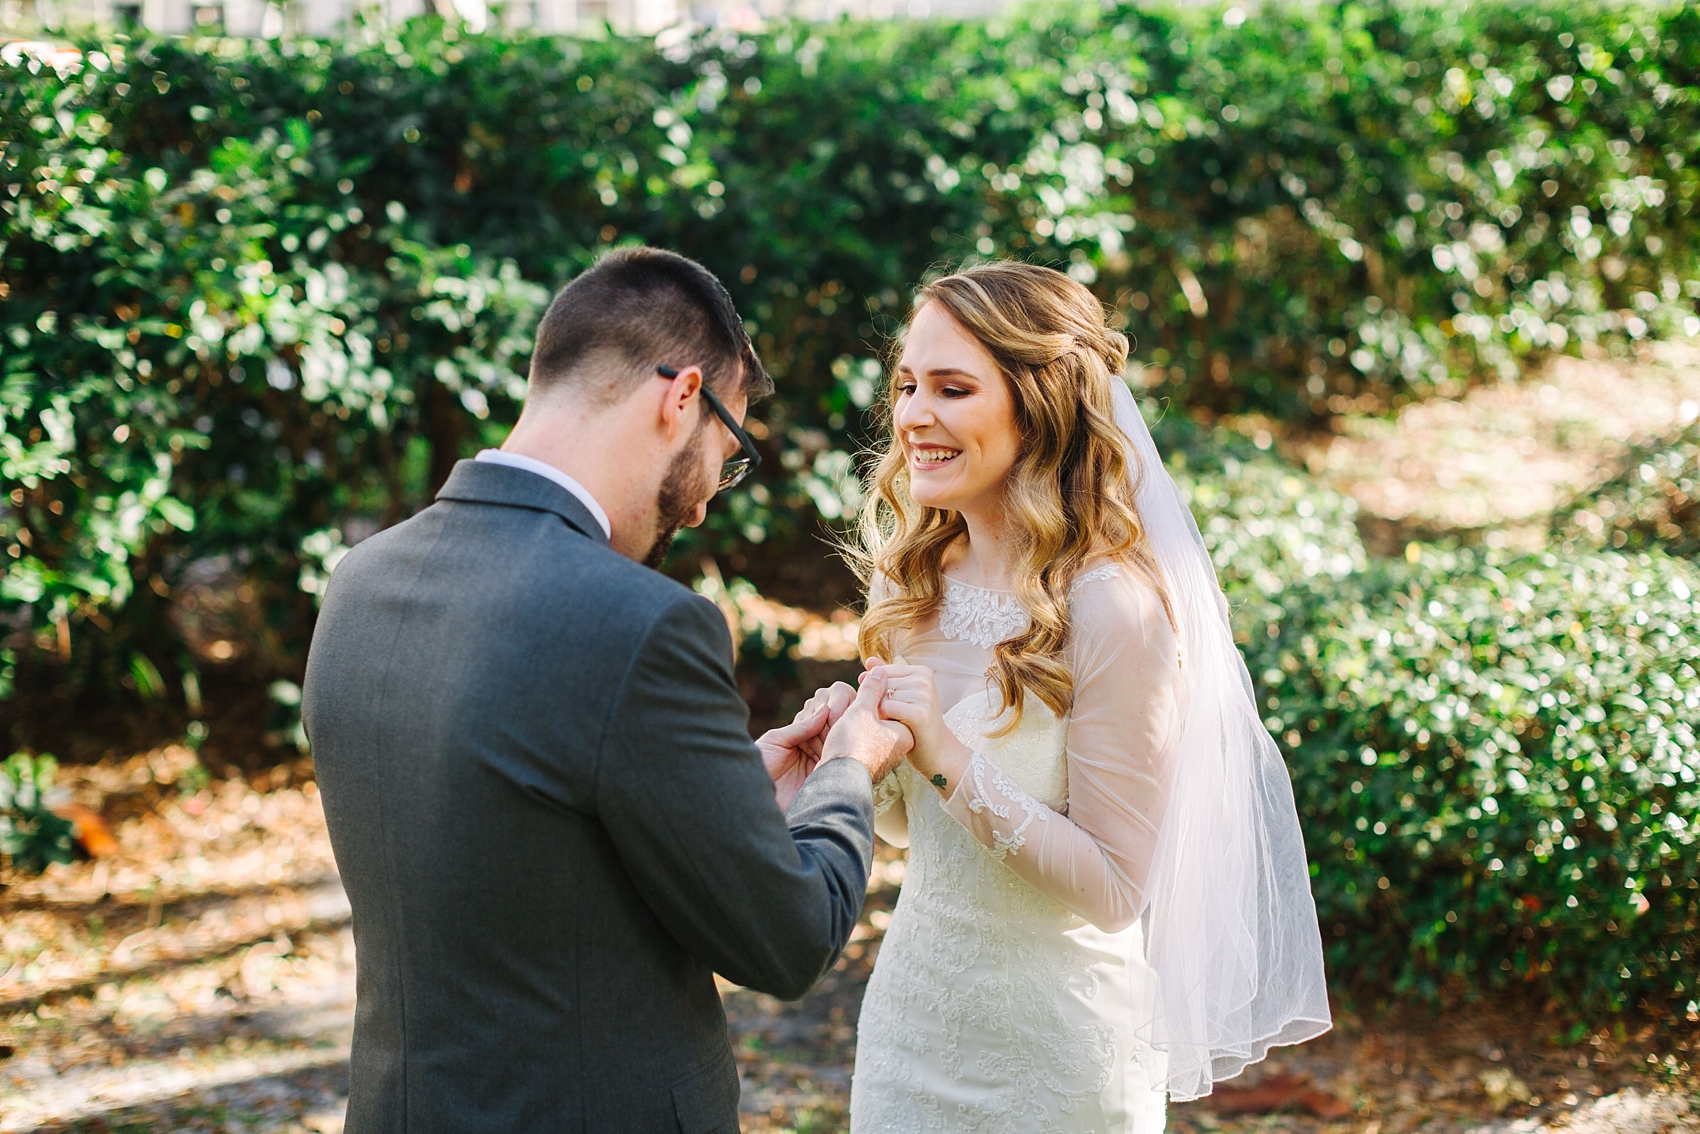 Sweet first look | tampa wedding photographer jake & katie photography danny lauren wedding